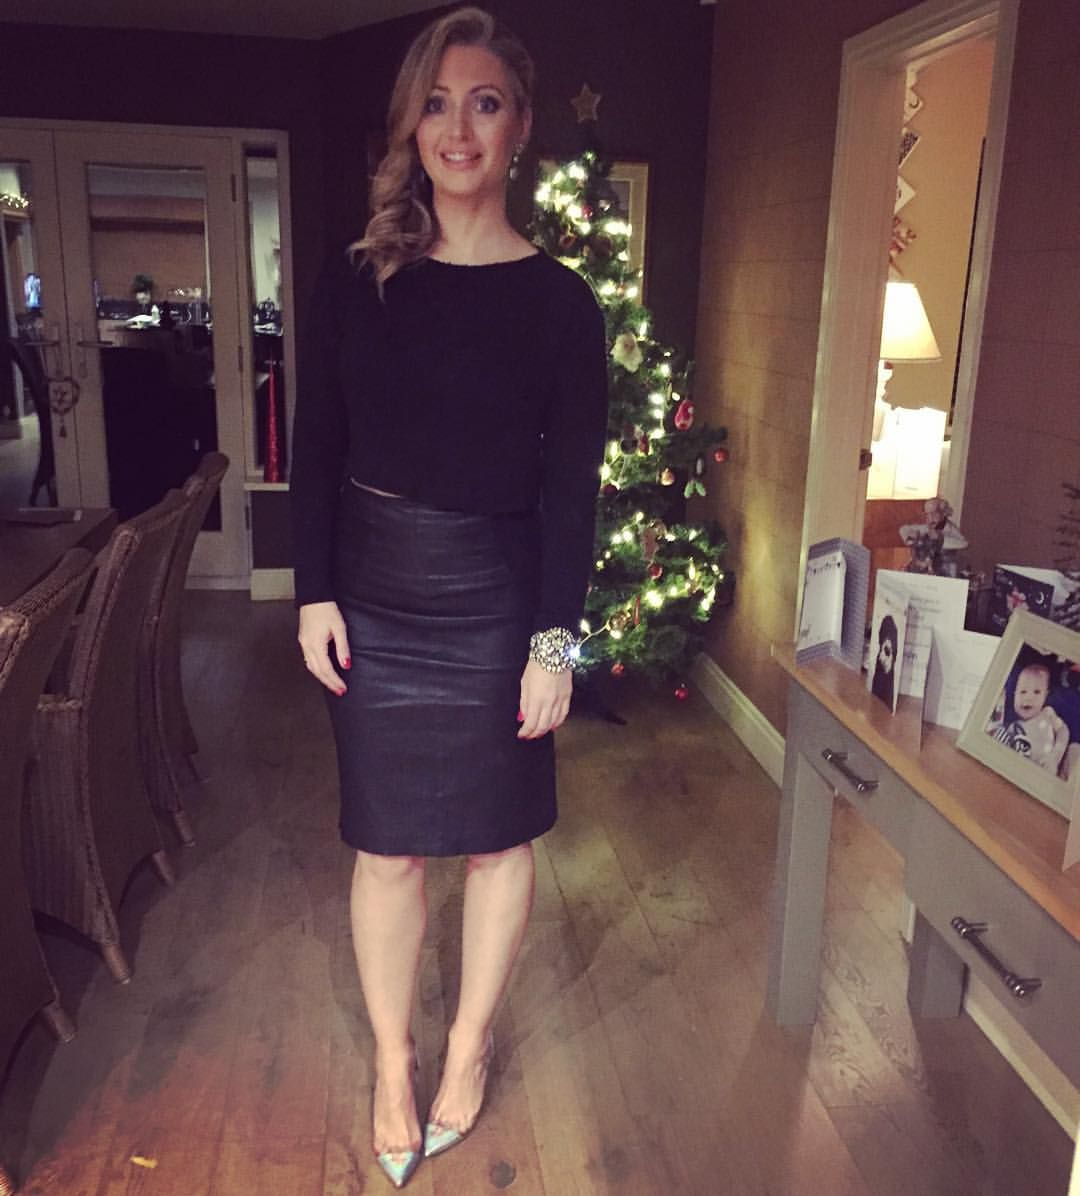 Cleavage Hayley McQueen naked (47 foto and video), Topless, Leaked, Instagram, legs 2015